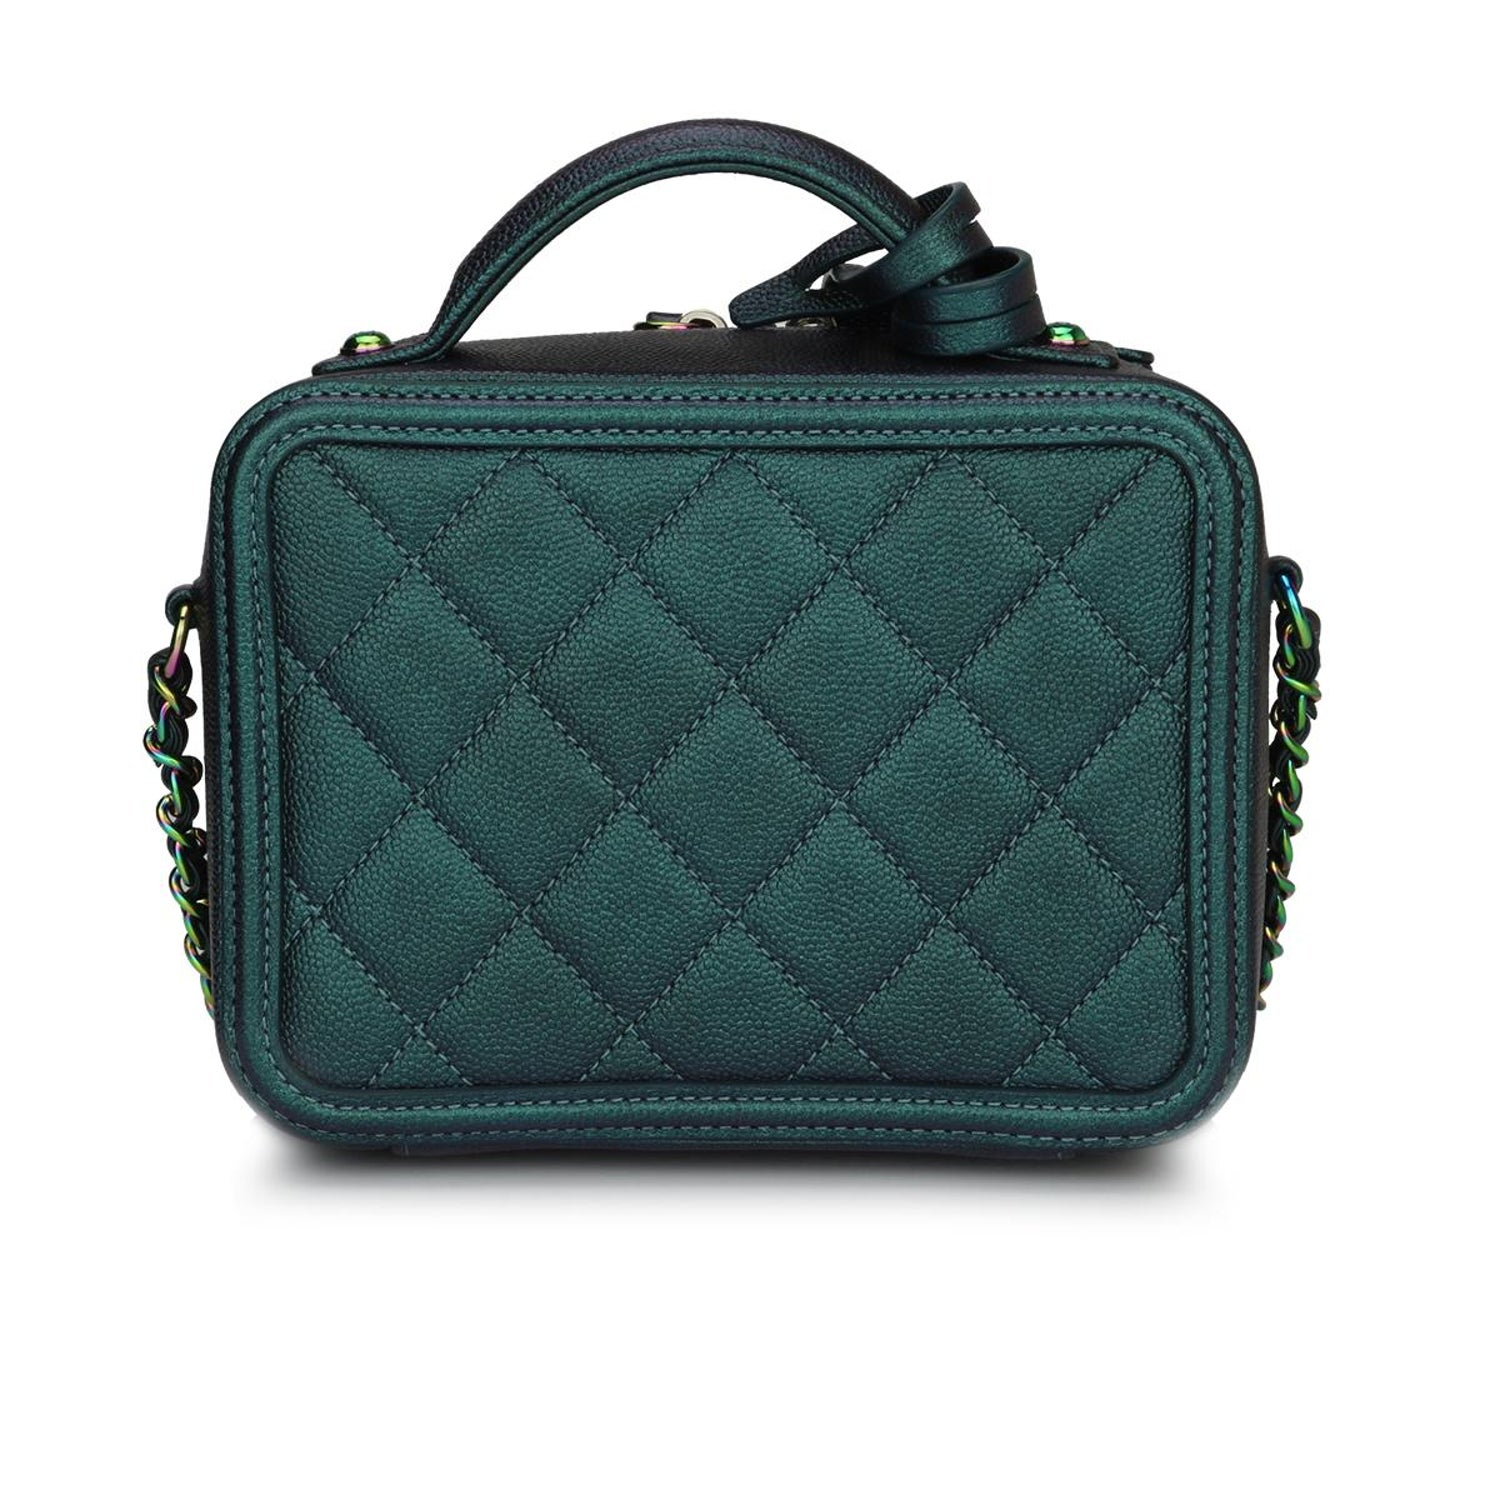 4972292db7eeb4 CHANEL Small CC Filigree Vanity Case Iridescent Dark Turquoise Caviar w/RHW  2018 For Sale at 1stdibs